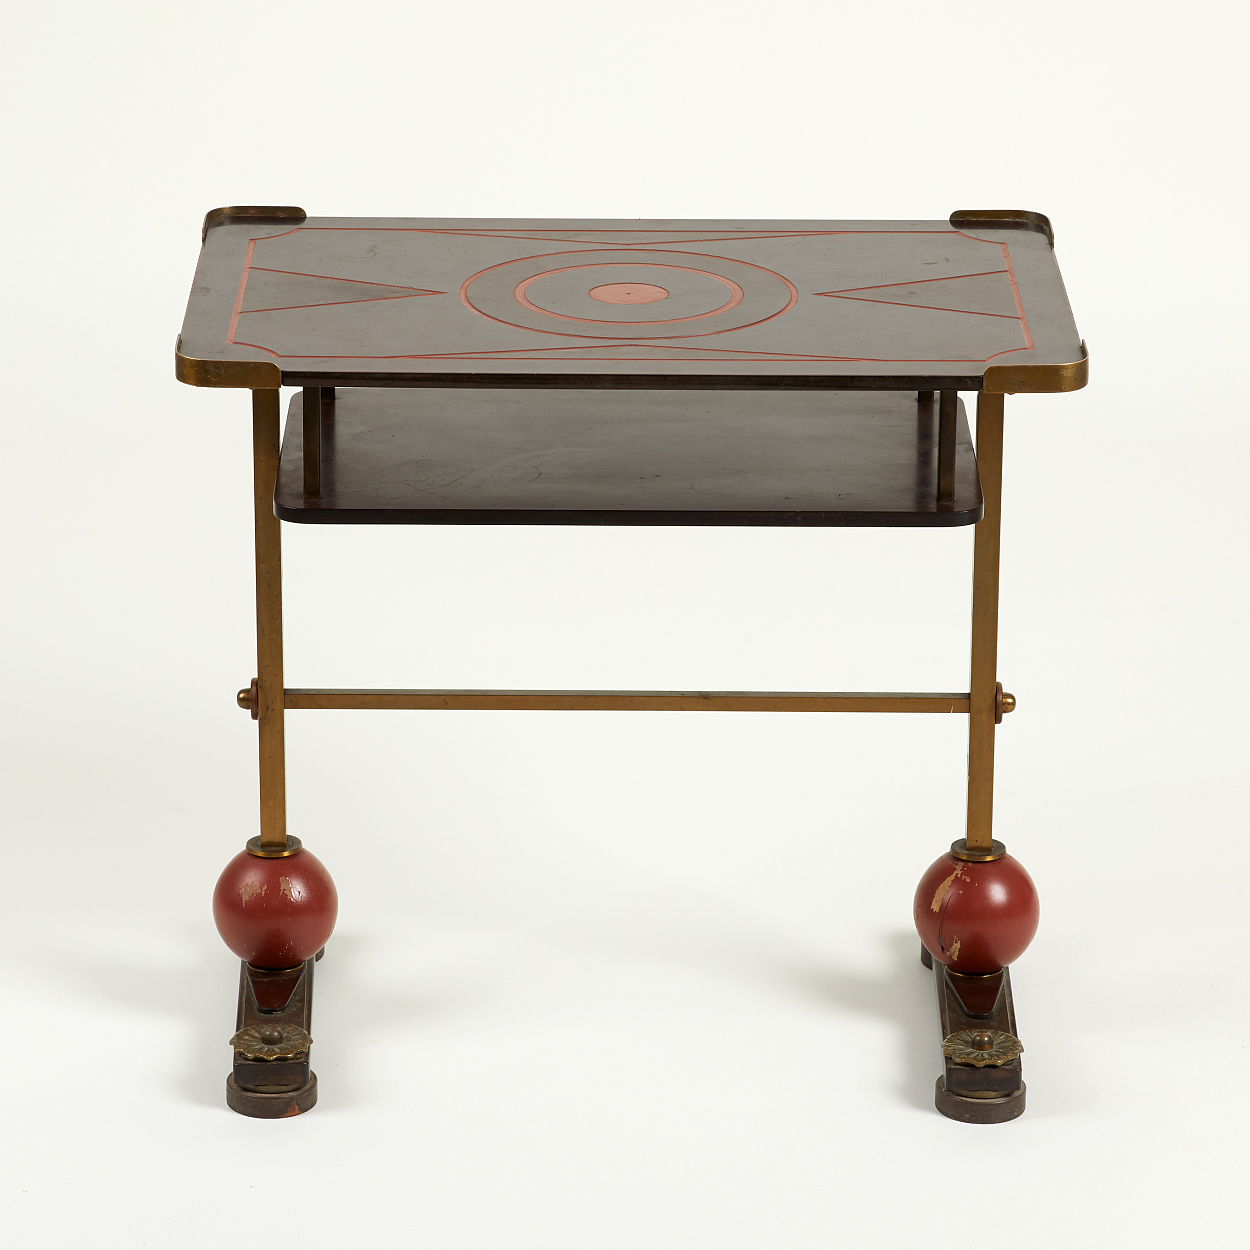 A Swedish Grace table attributed to Jean Adrian